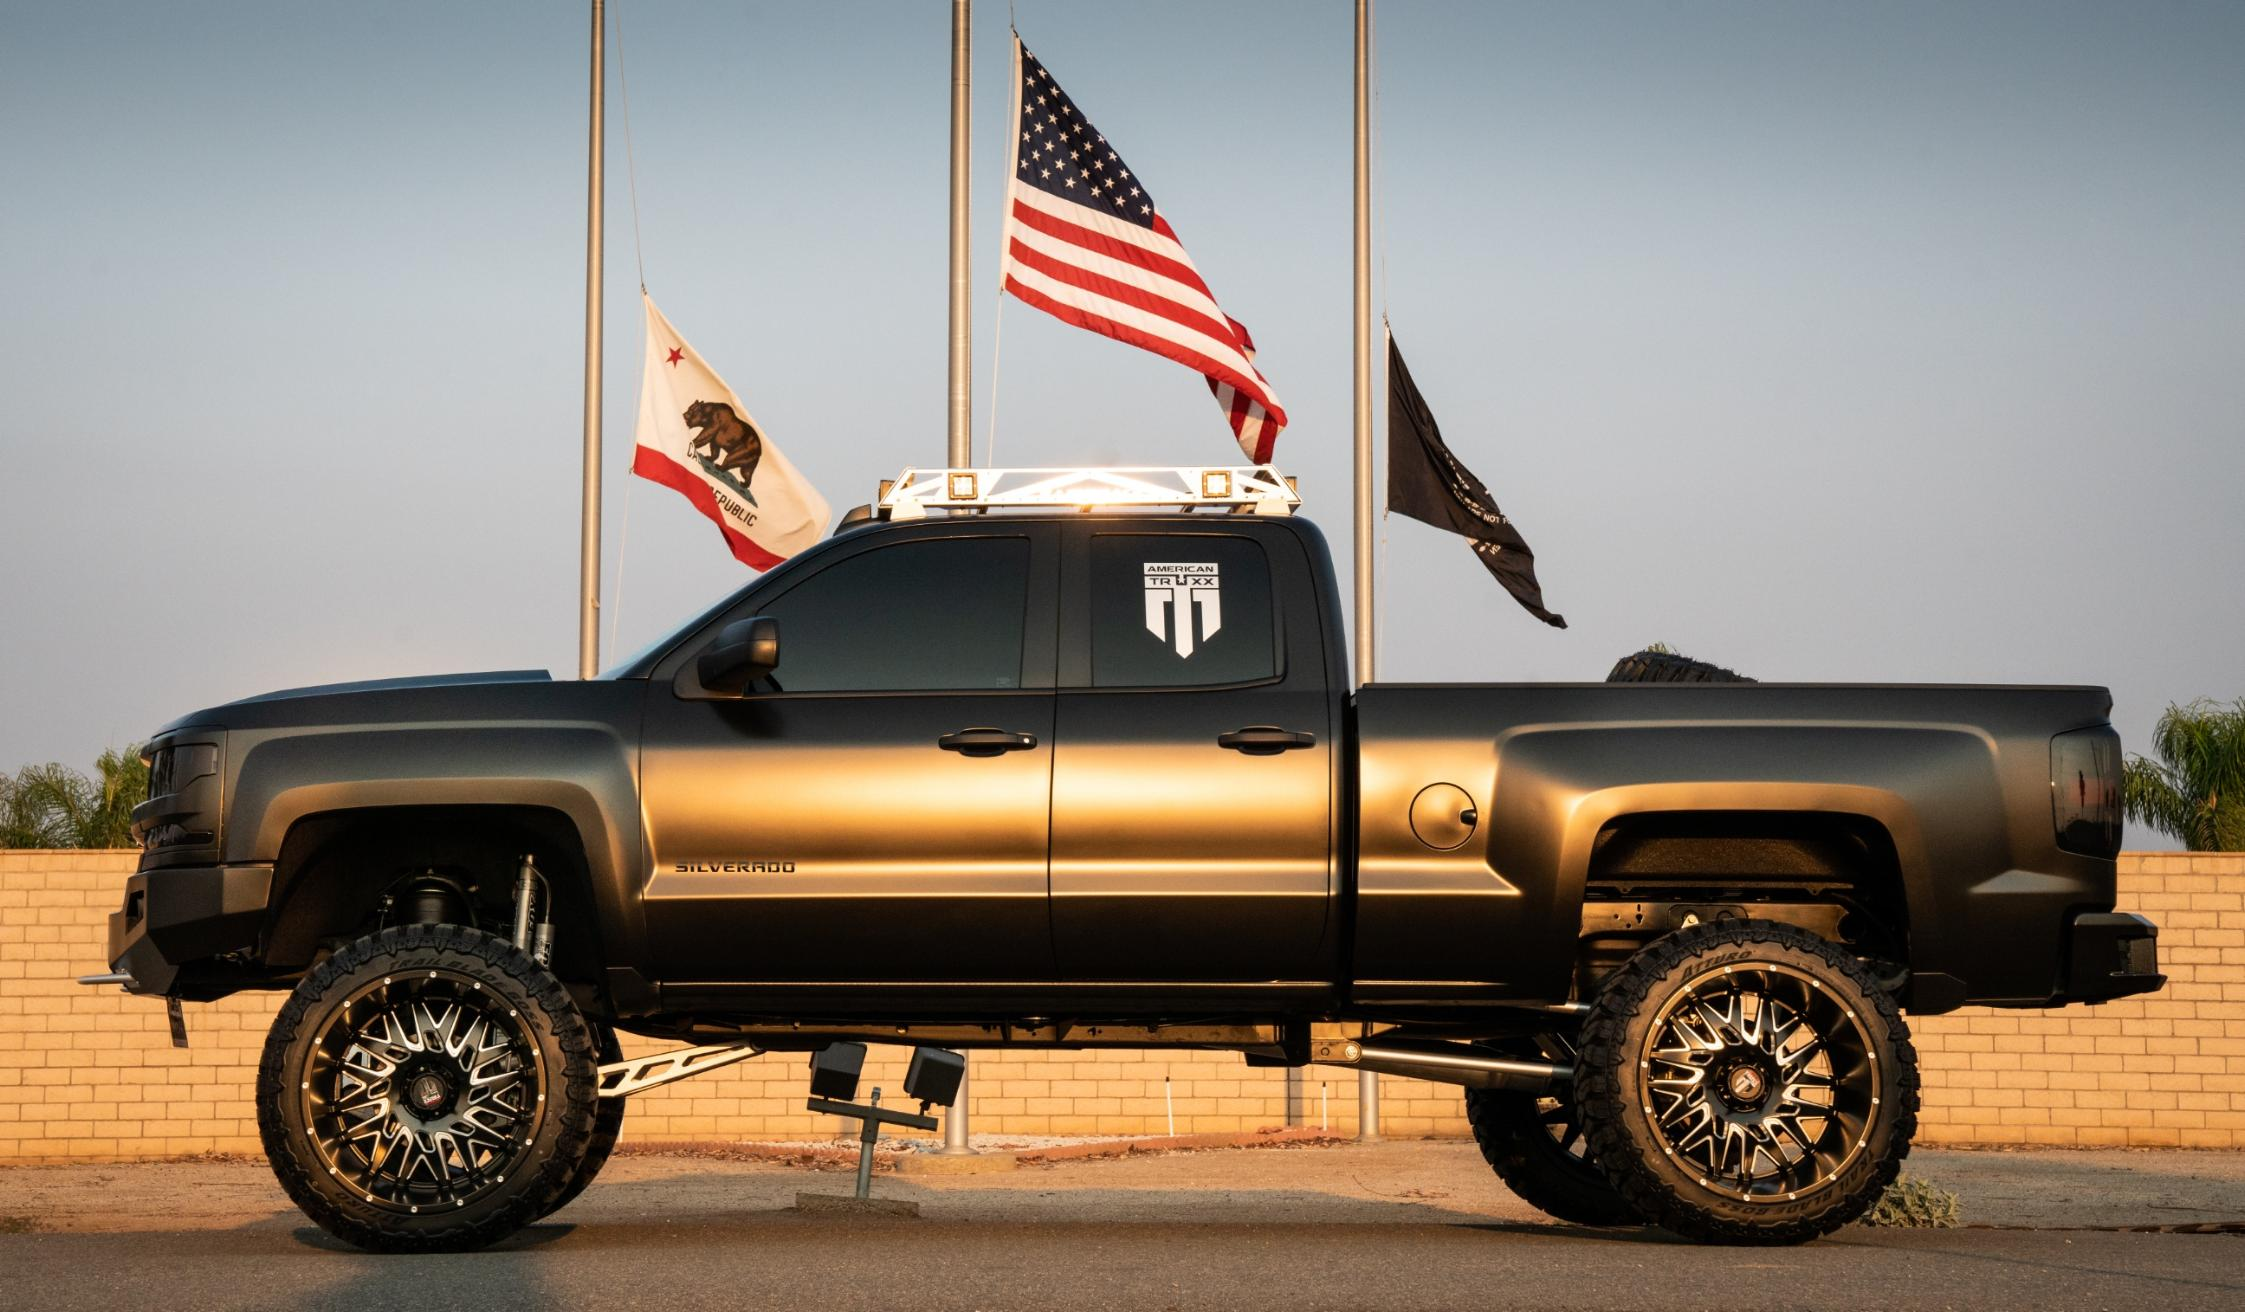 Meyer Chassis in Murrieta, California, was part of build to customize a Chevy Silverado 1500 for Damion Santiago, a disabled mil